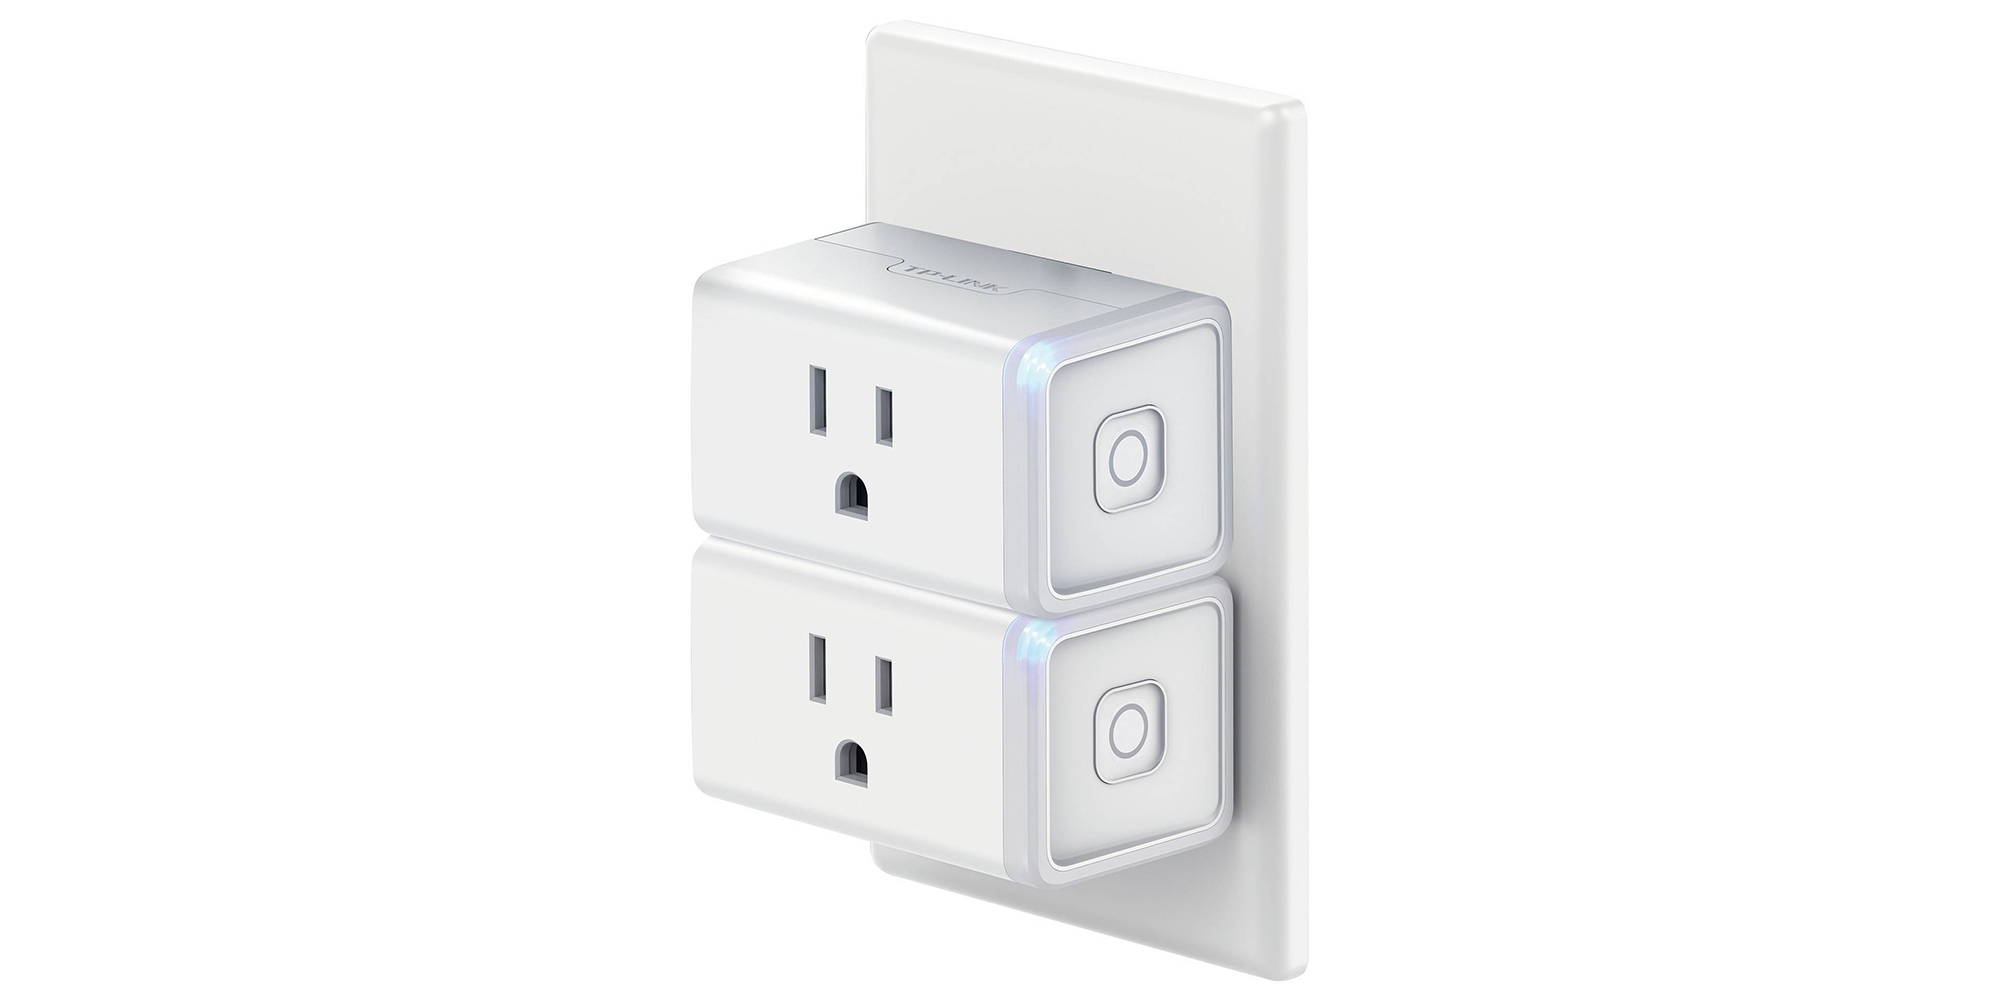 Expand your smart home w/ two TP-Link Wi-Fi-enabled Plugs for $35 ($50 value)